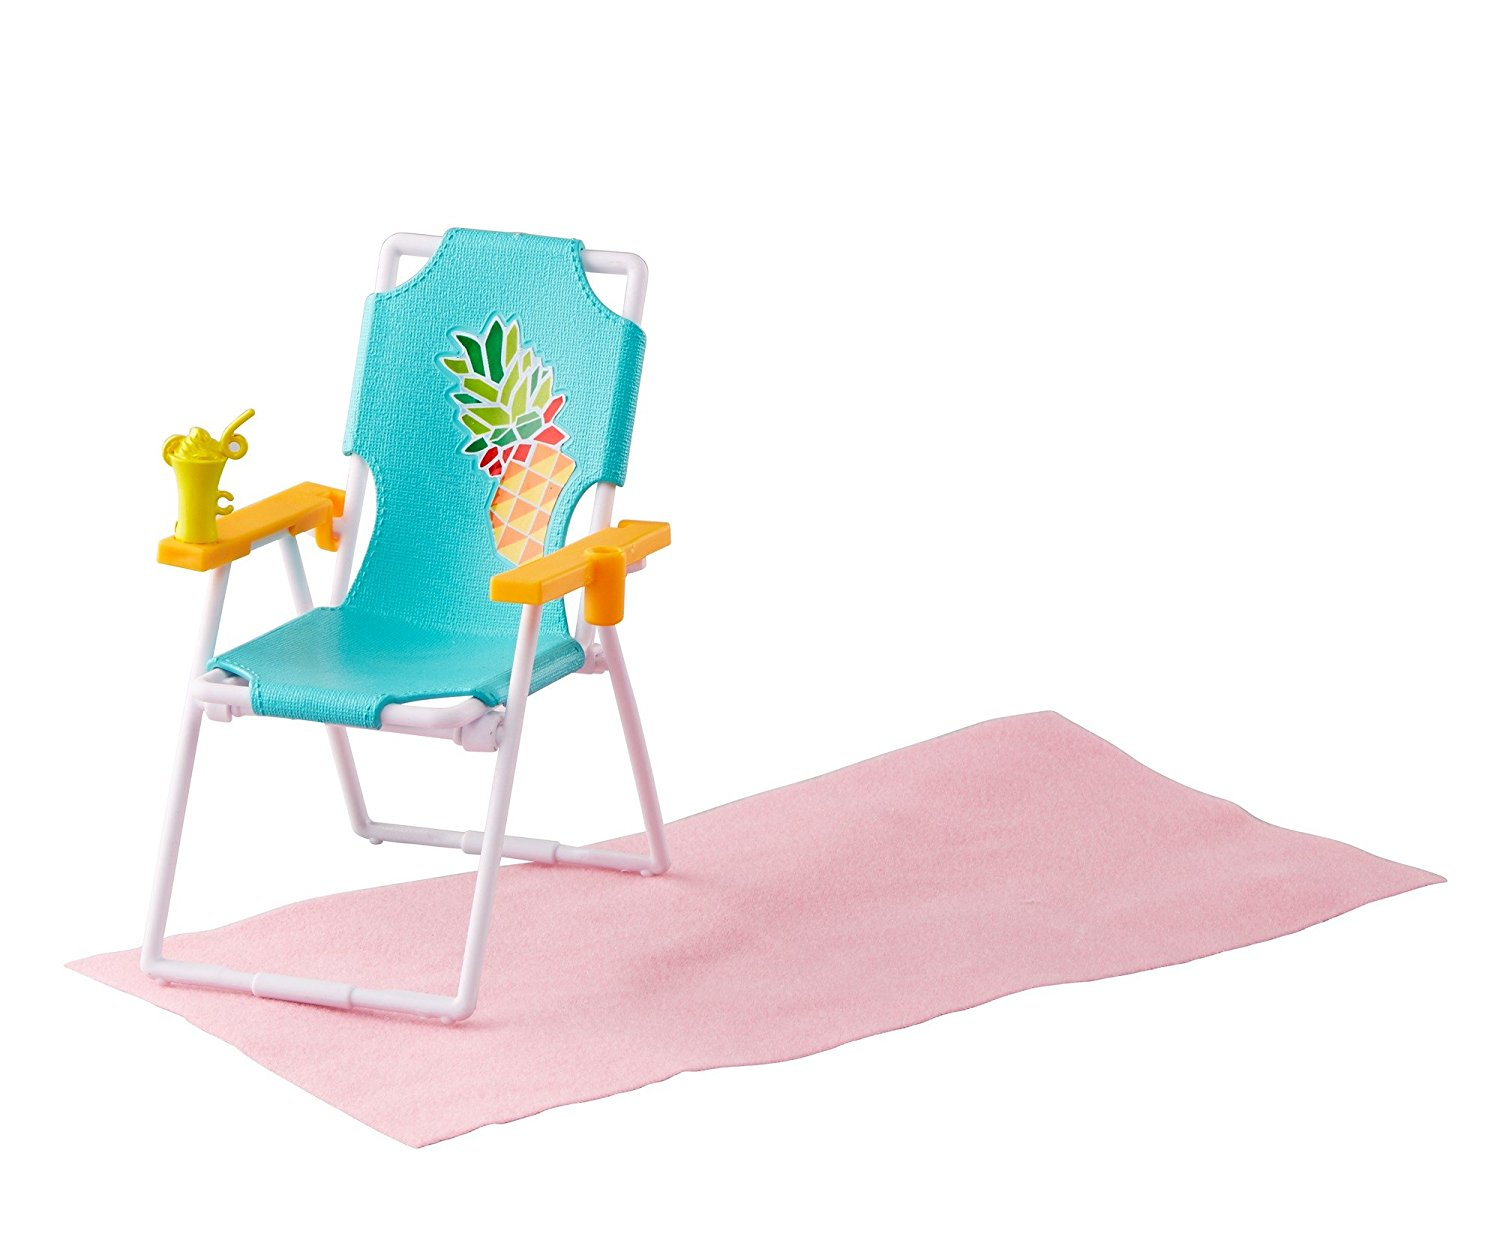 Beach Chair Accessories Toddler Chairs And Table Ken Doll Barbie Fashion Sisters Crayola